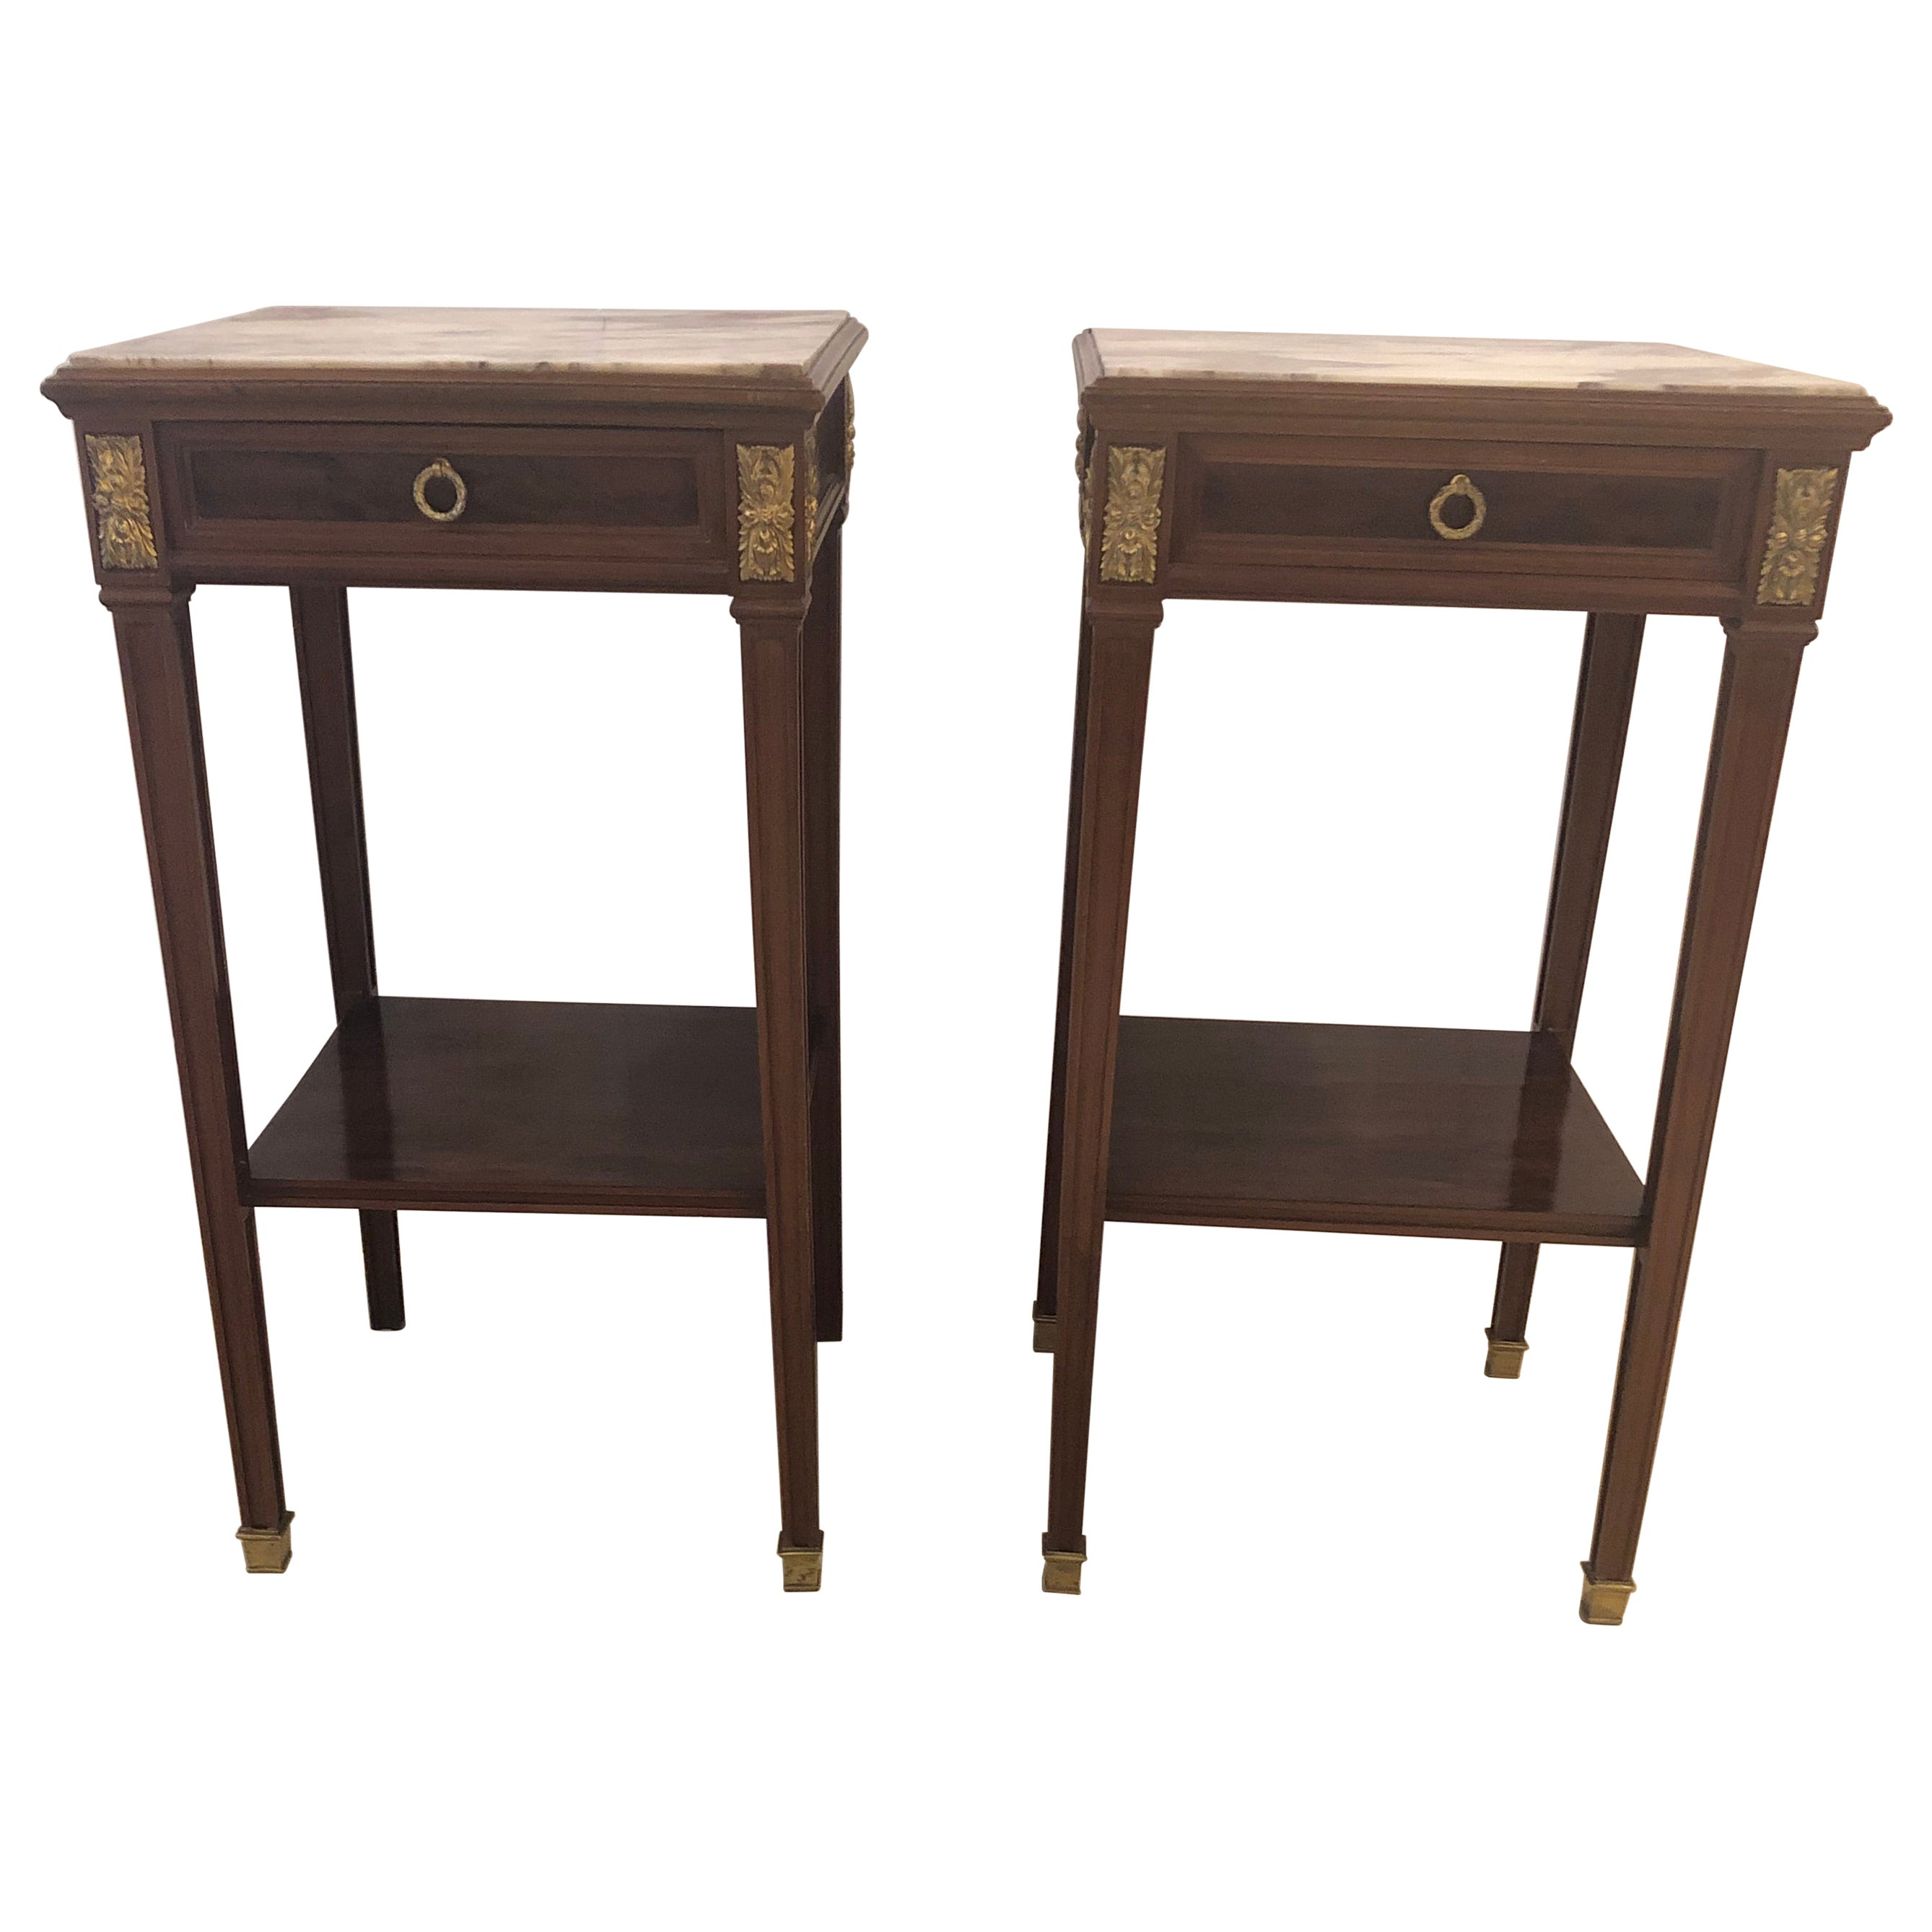 Sublimely Elegant Pair of Antique French Directoire Nightstands or End Tables